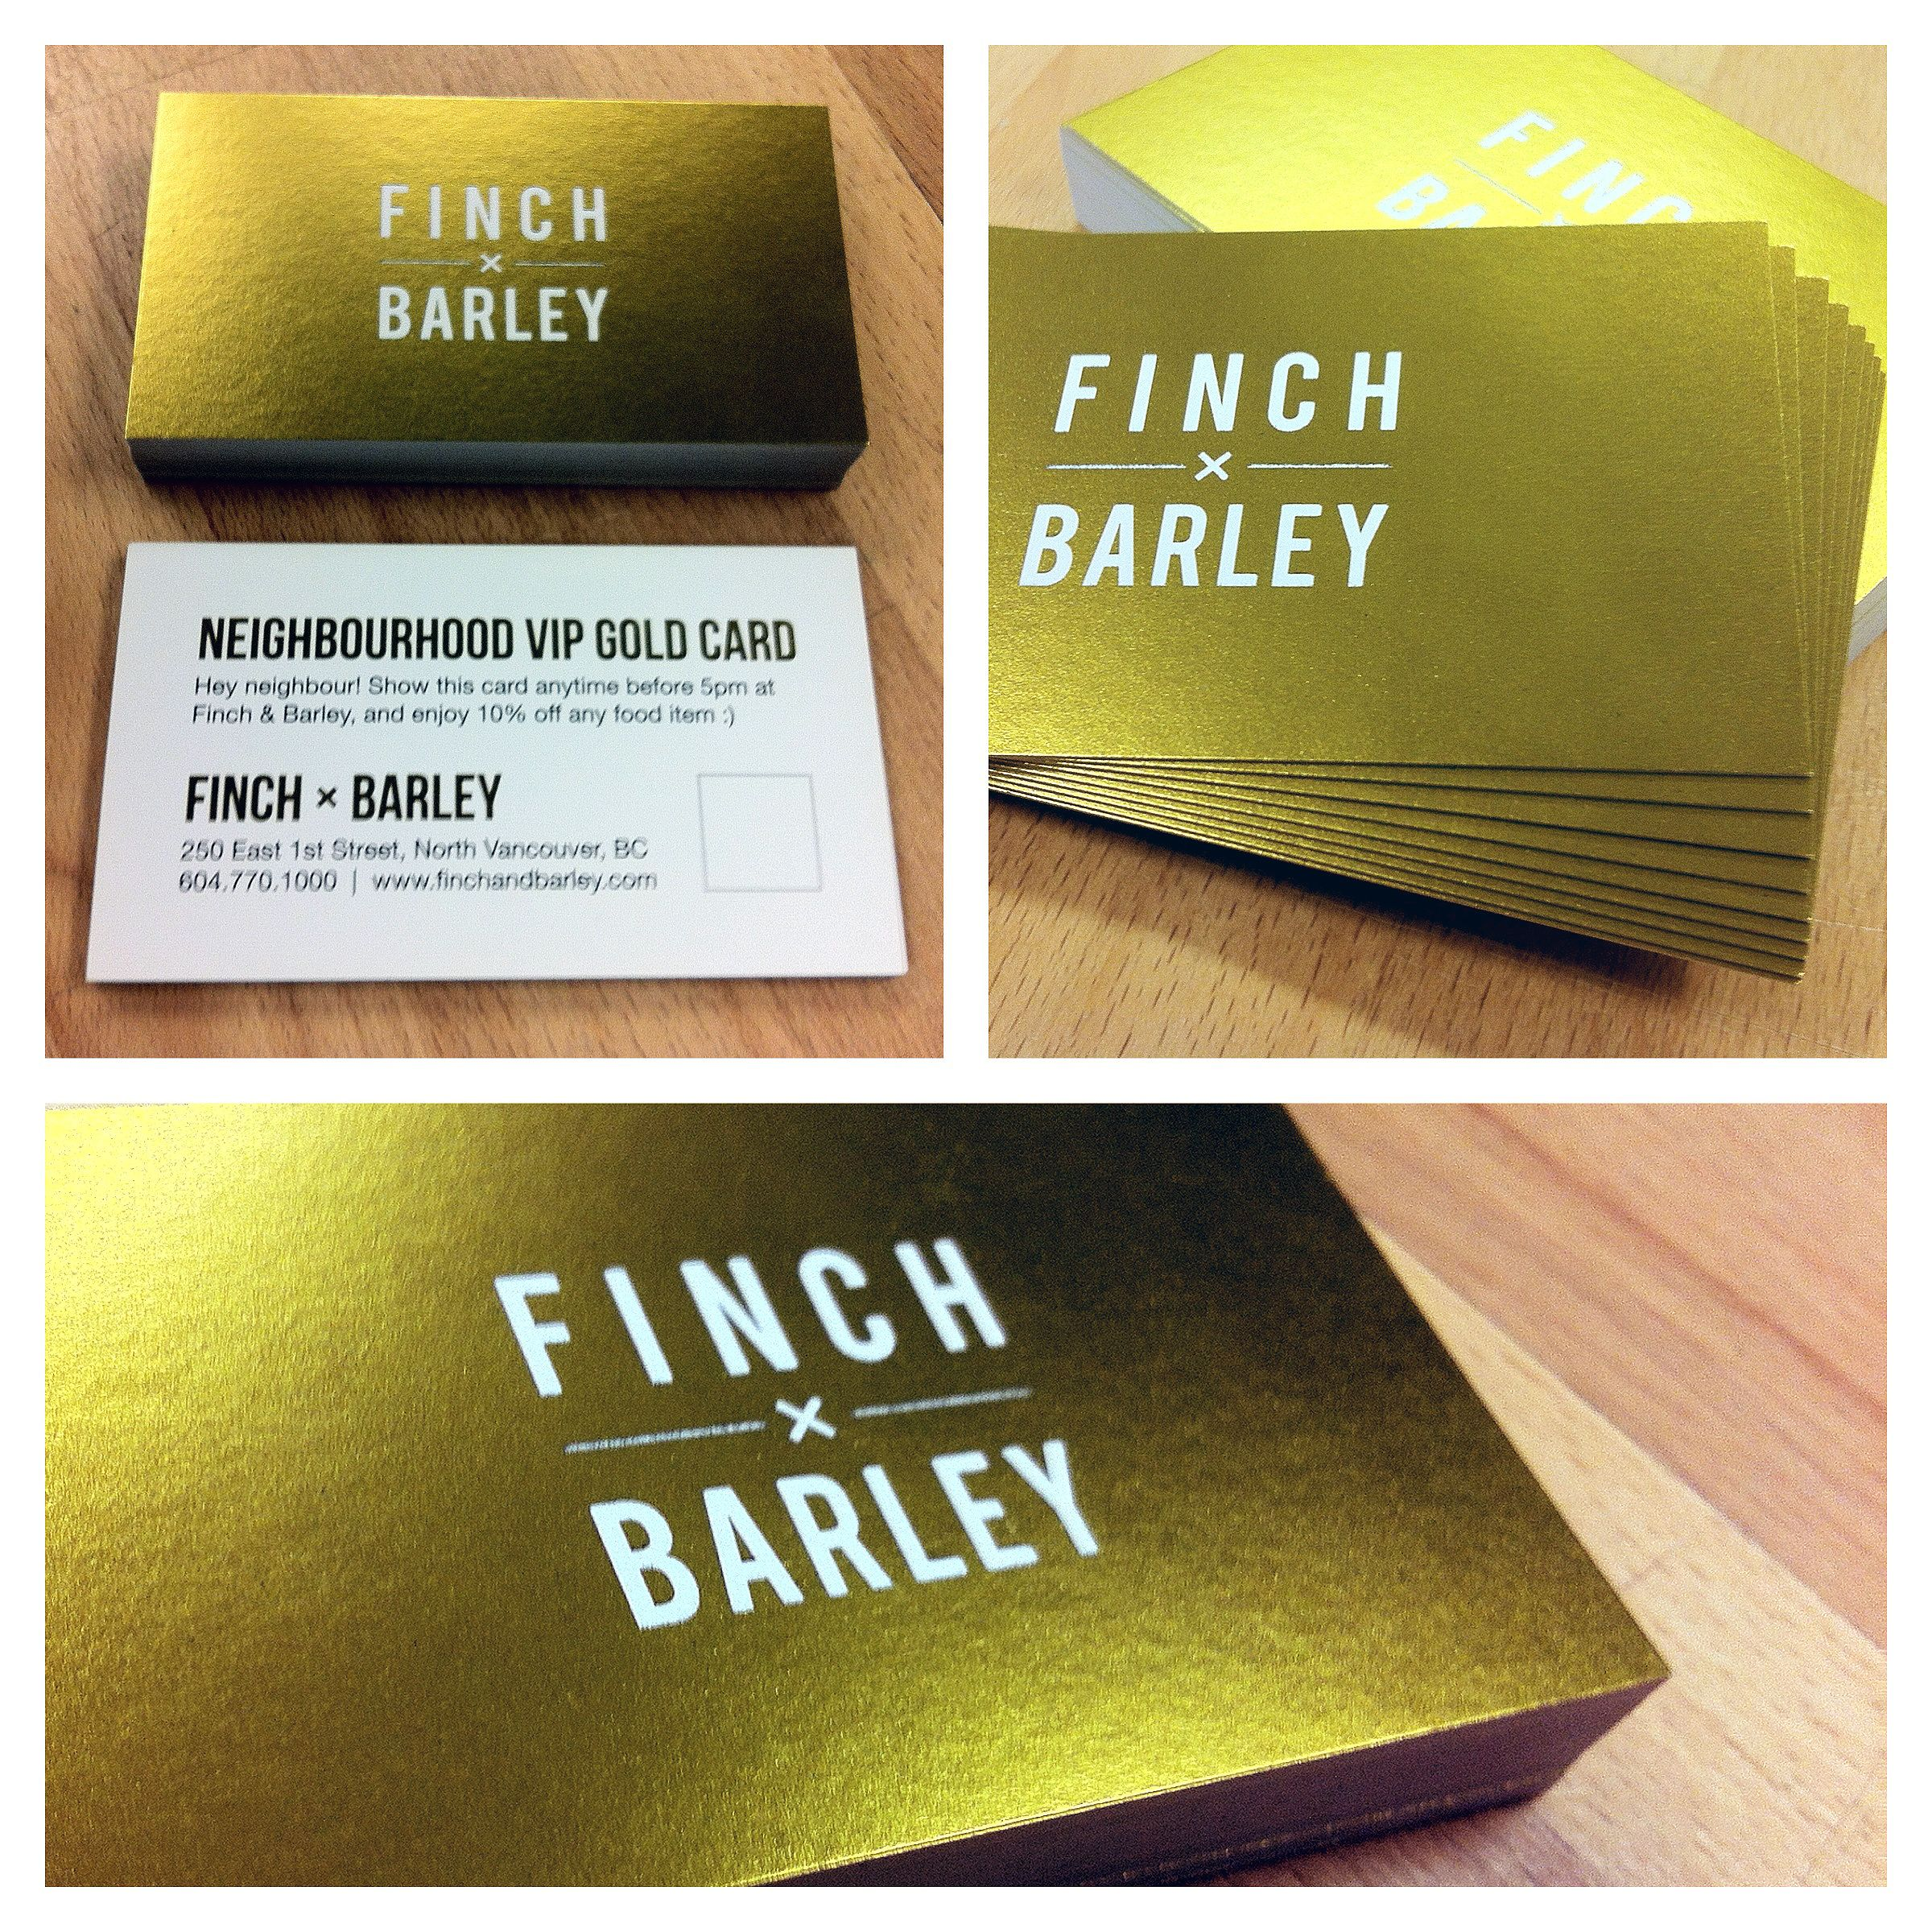 Literal gold cards for finch x barley shiny order foil literal gold cards for finch x barley shiny order foil reheart Image collections